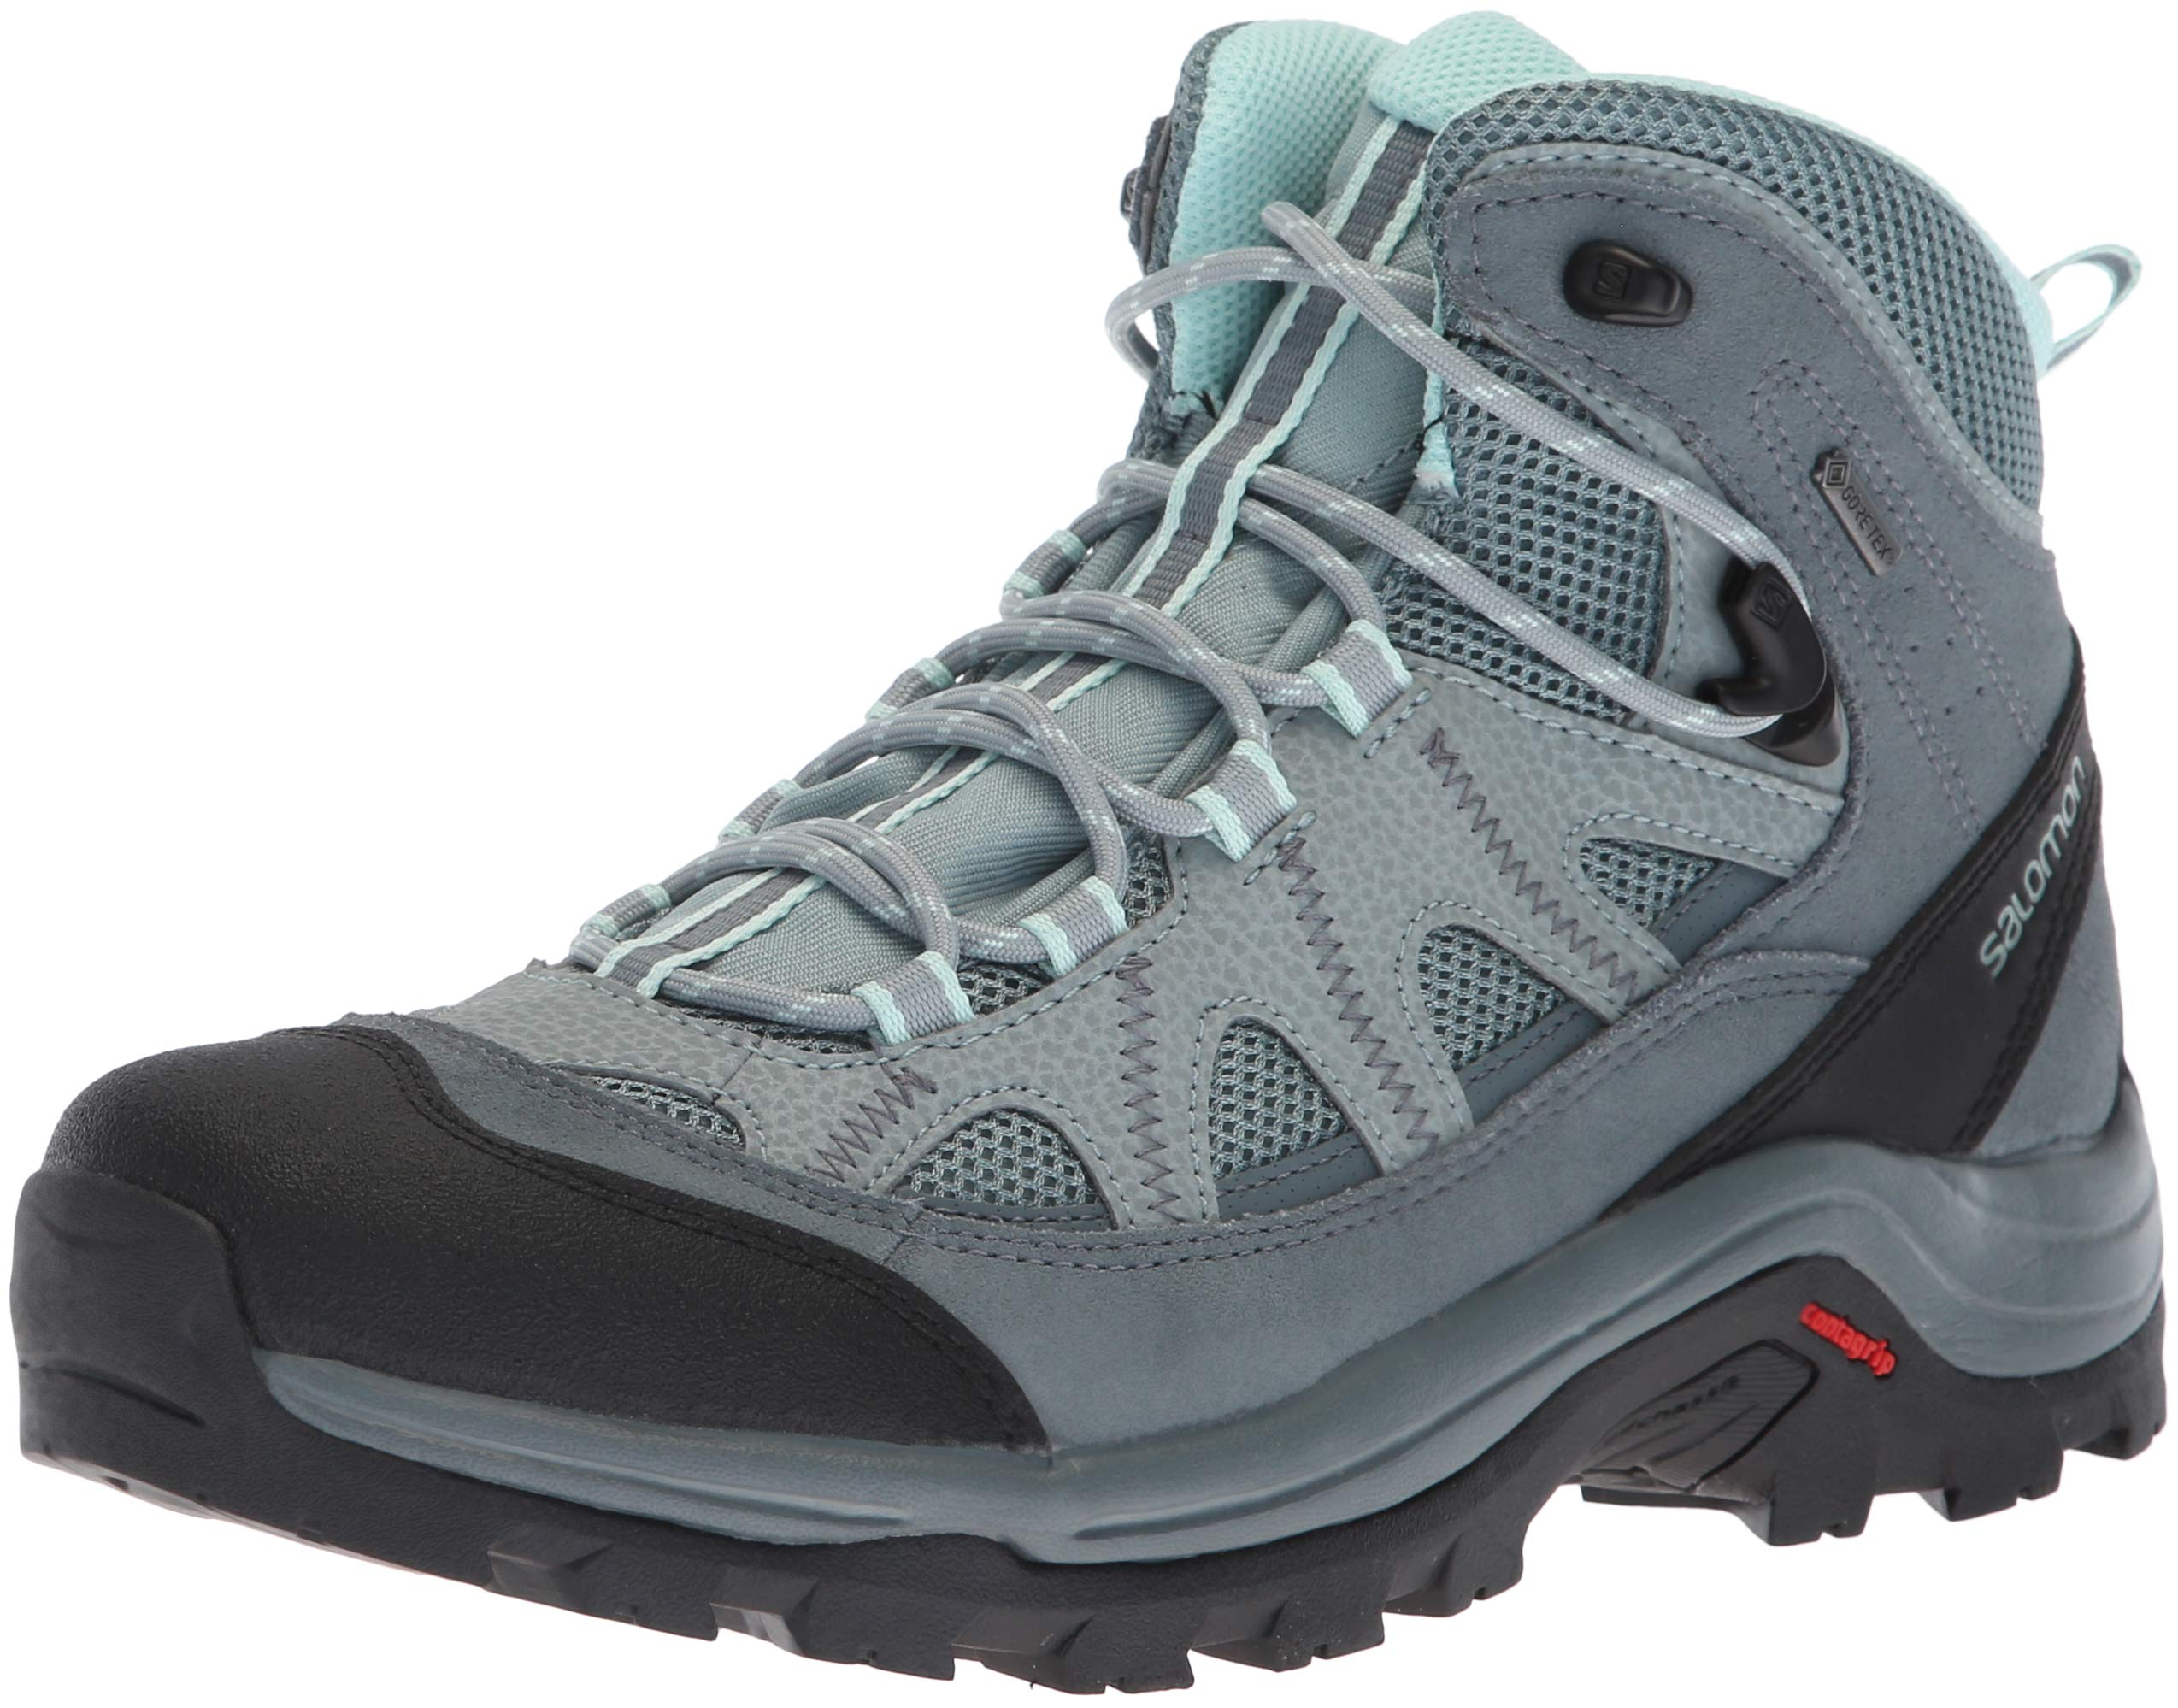 Salomon Women's Authentic LTR GTX W Backpacking Boot, Lead/Stormy Weather/Eggshell Blue, 6 B US